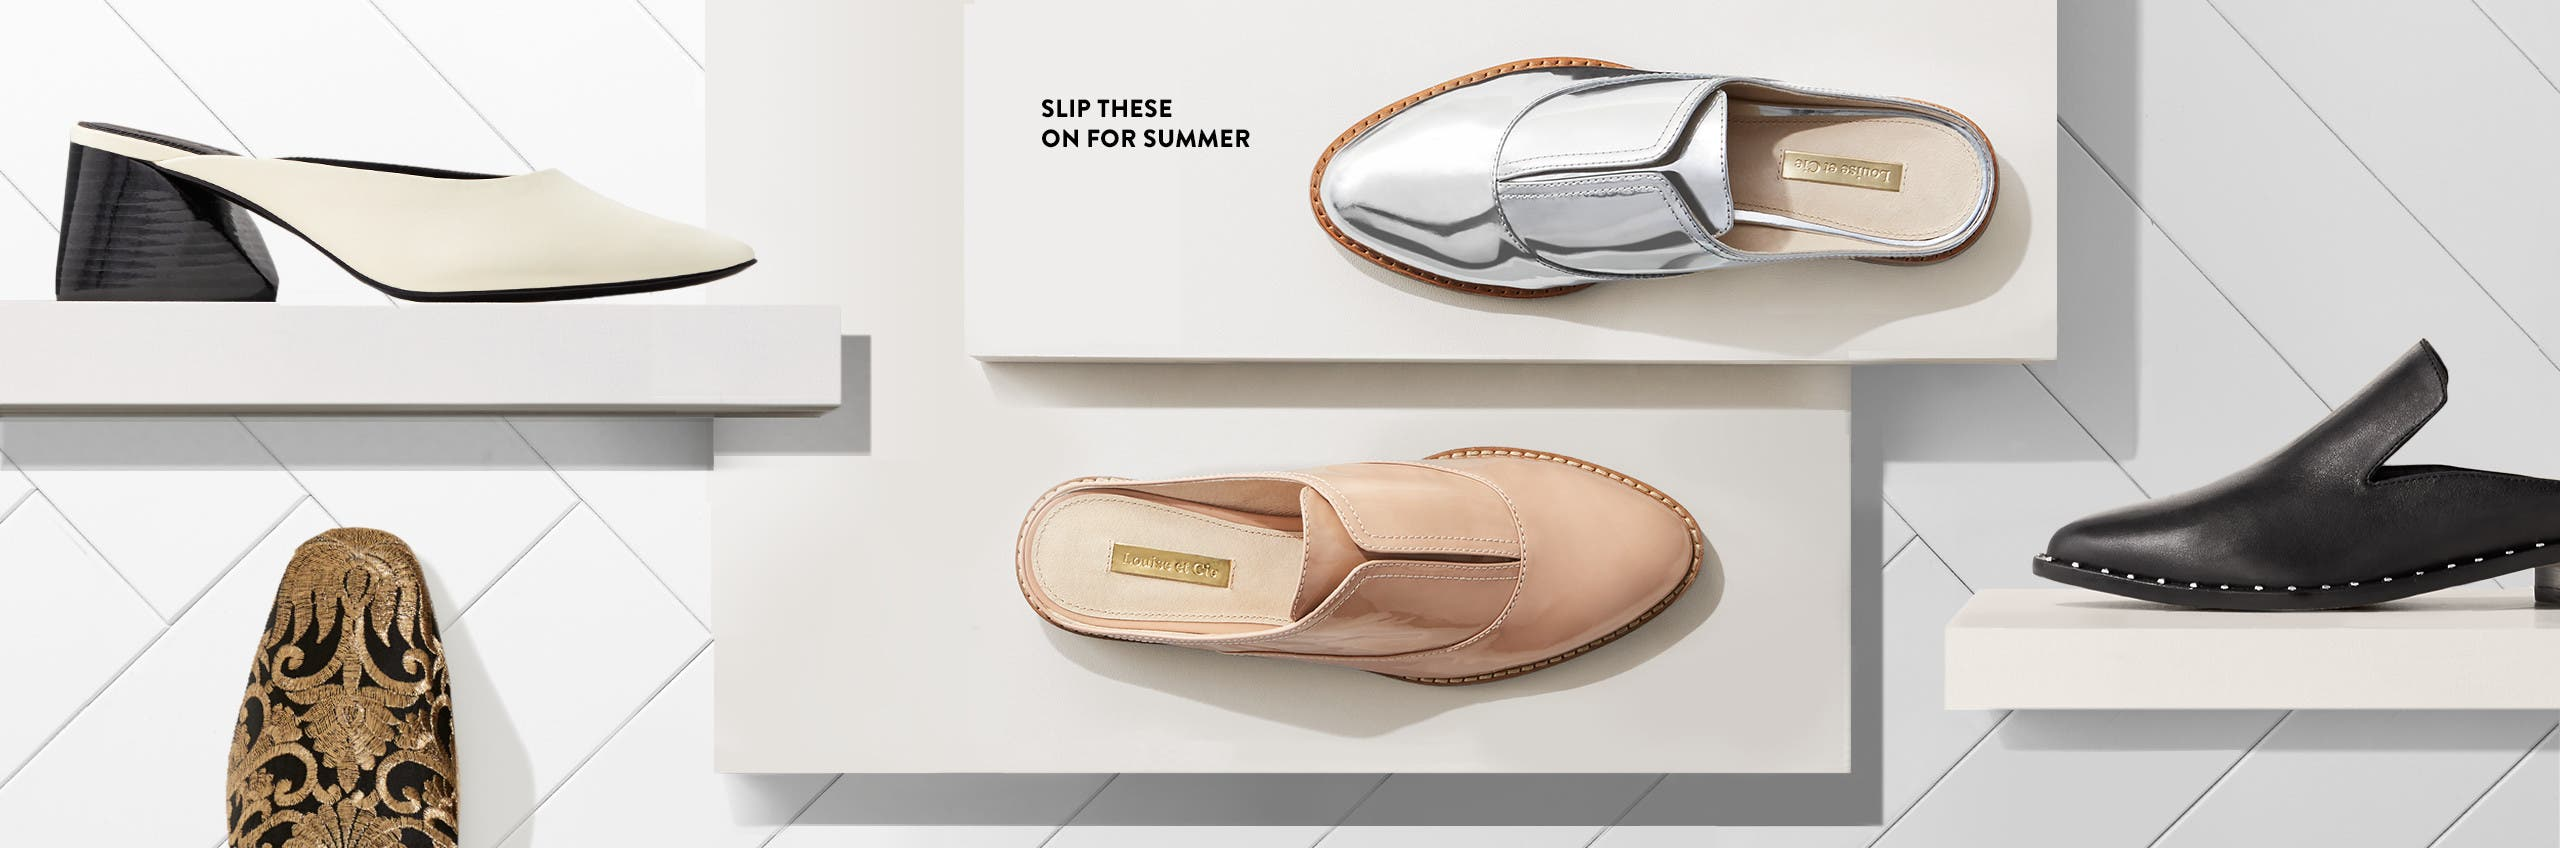 Standout mules for summer.